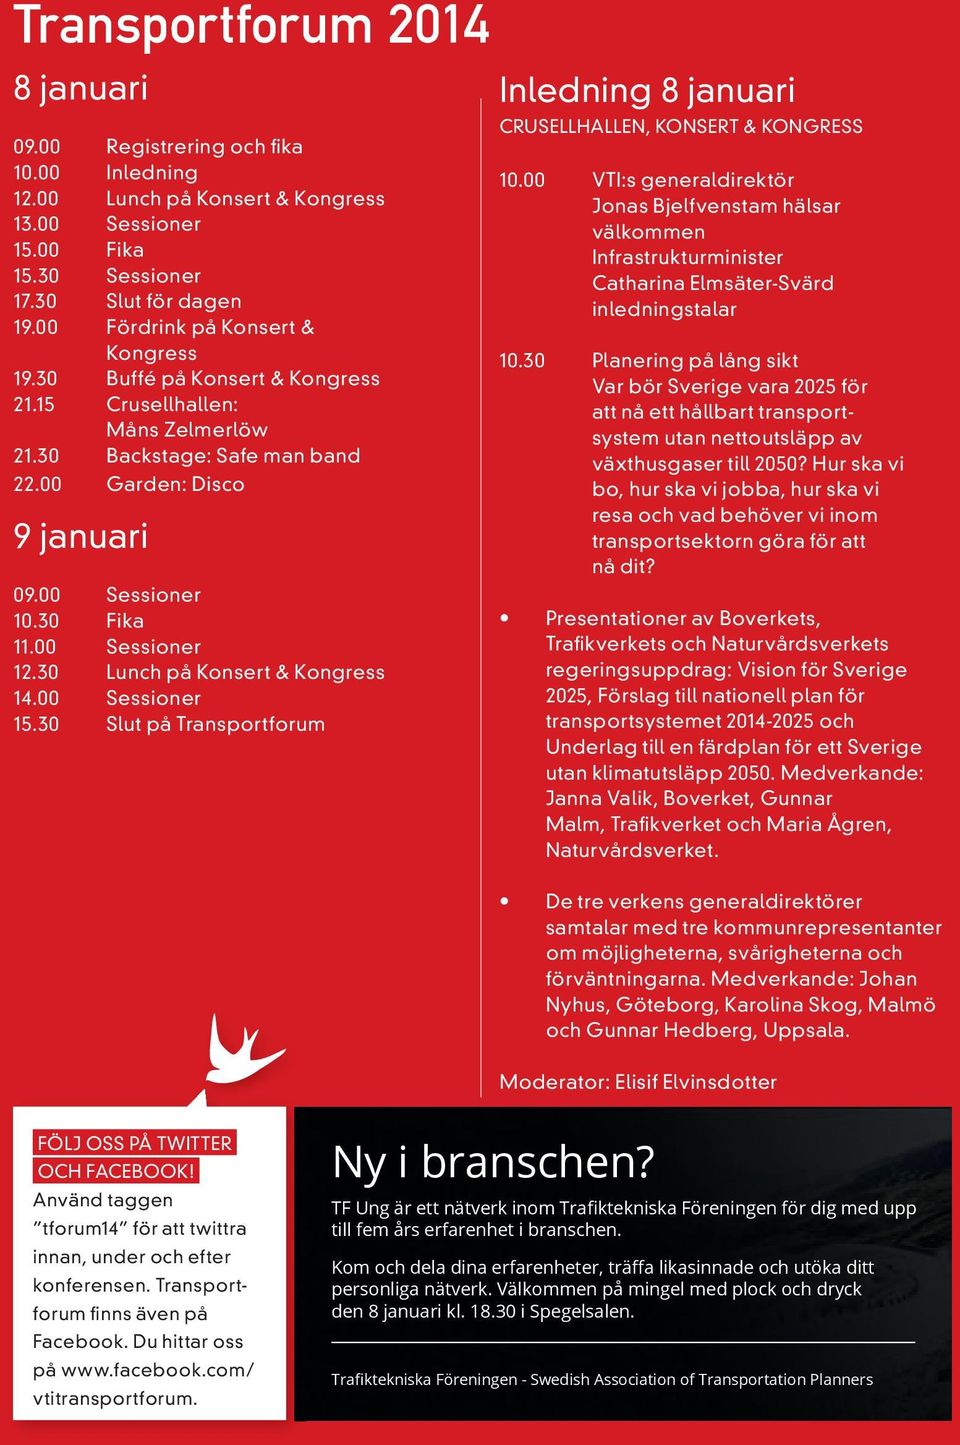 00 Sessioner 12.30 Lunch på Konsert & Kongress 14.00 Sessioner 15.30 Slut på Transportforum Inledning 8 januari CRUSELLHALLEN, KONSERT & KONGRESS 10.